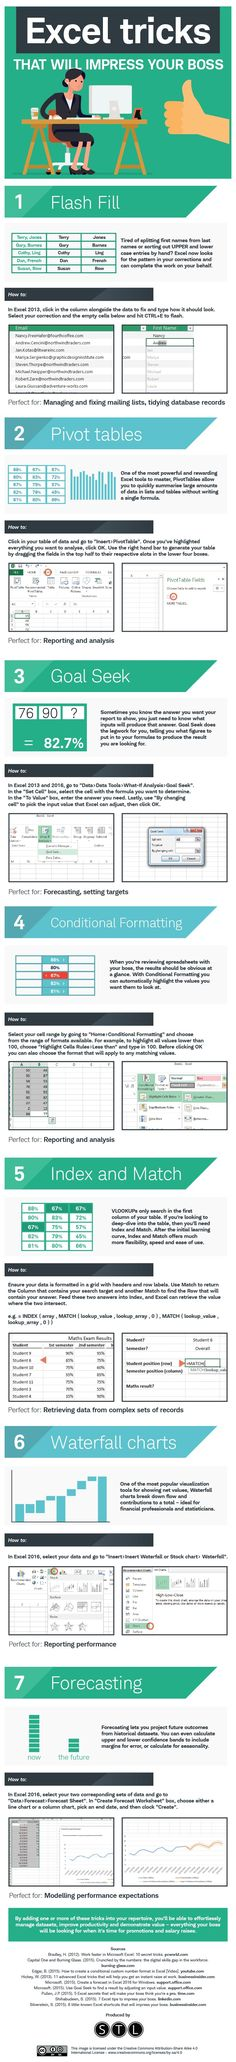 Handy Excel Tricks That'll Impress Your Boss [Infographic] These lesser-known excel tricks are sure to impress your boss!These lesser-known excel tricks are sure to impress your boss! Microsoft Excel, Microsoft Office, Microsoft Windows, Microsoft Hotmail, Lerntyp Test, Excel Tips, Excel Hacks, Vba Excel, Computer Help